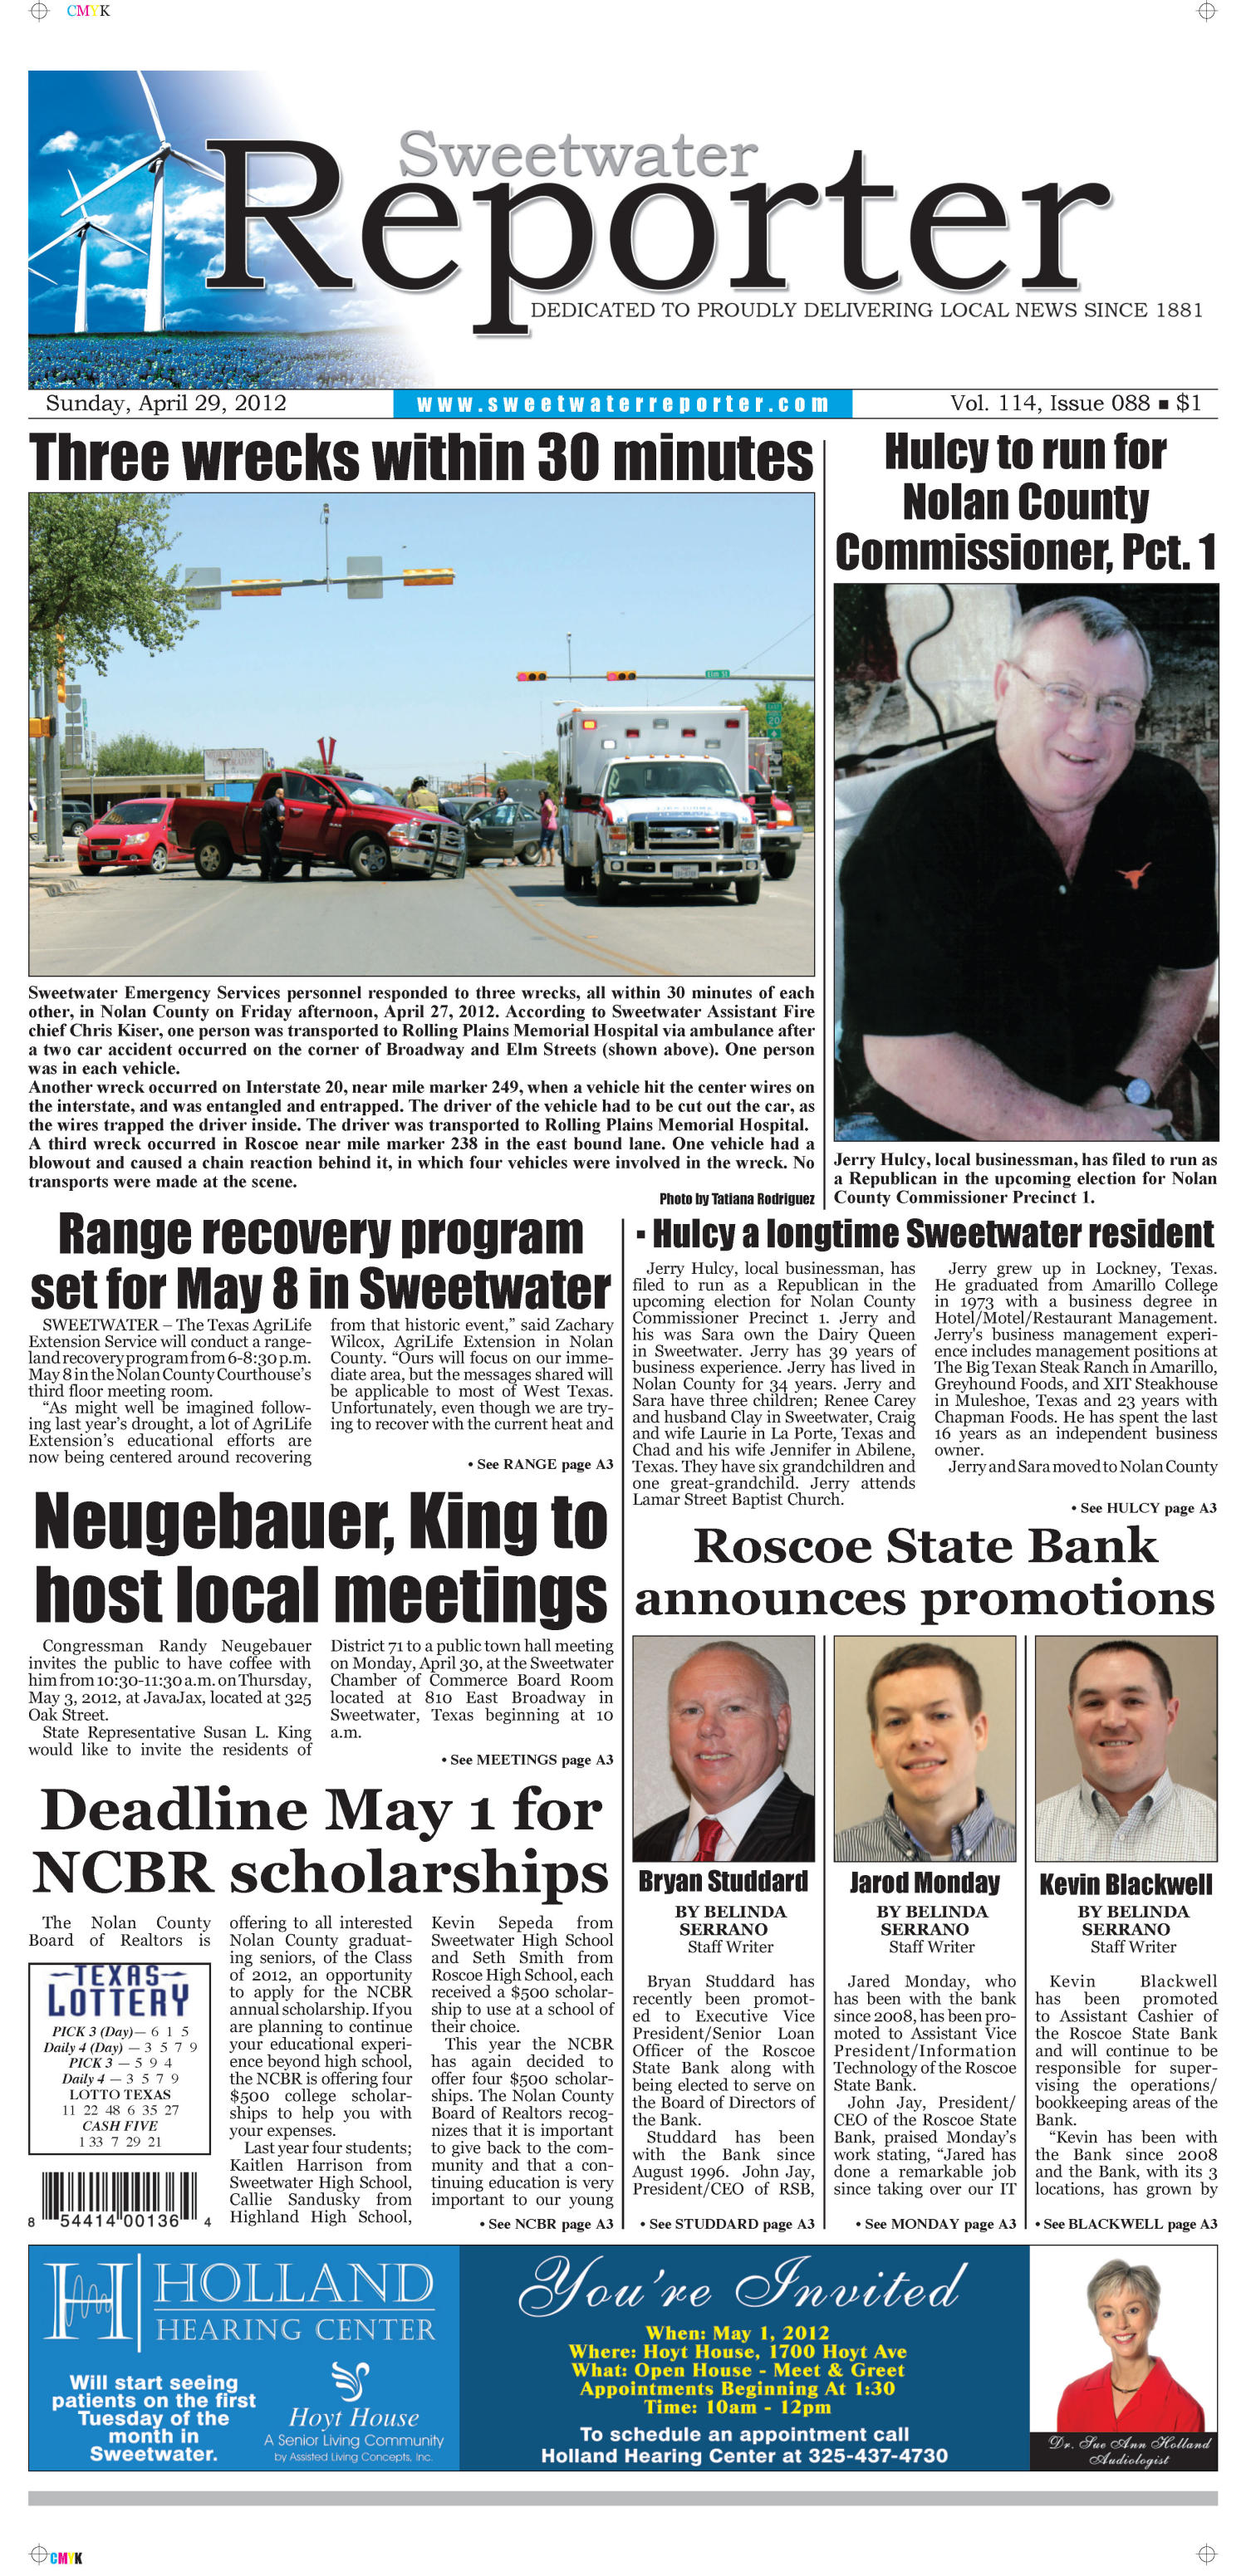 Sweetwater Reporter (Sweetwater, Tex.), Vol. 114, No. 088, Ed. 1 Sunday, April 29, 2012                                                                                                      [Sequence #]: 1 of 20